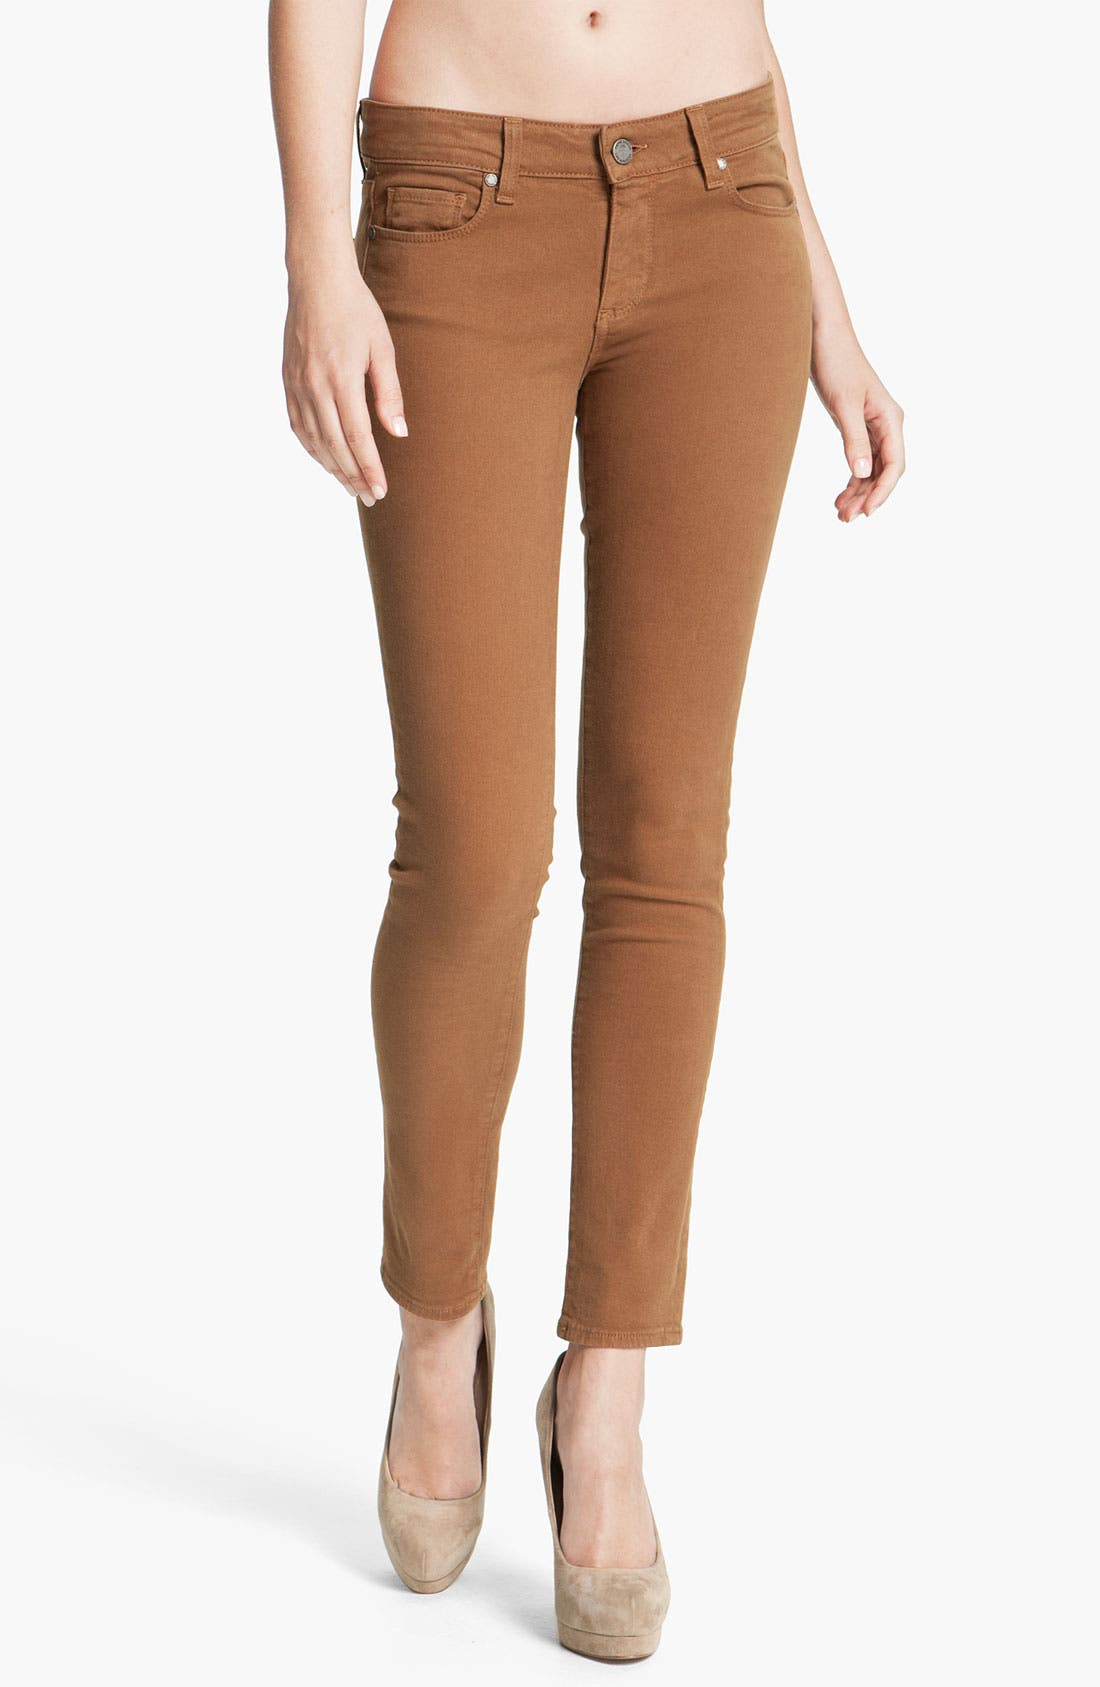 Alternate Image 1 Selected - Paige Denim 'Skyline' Skinny Jeans (Caramel)